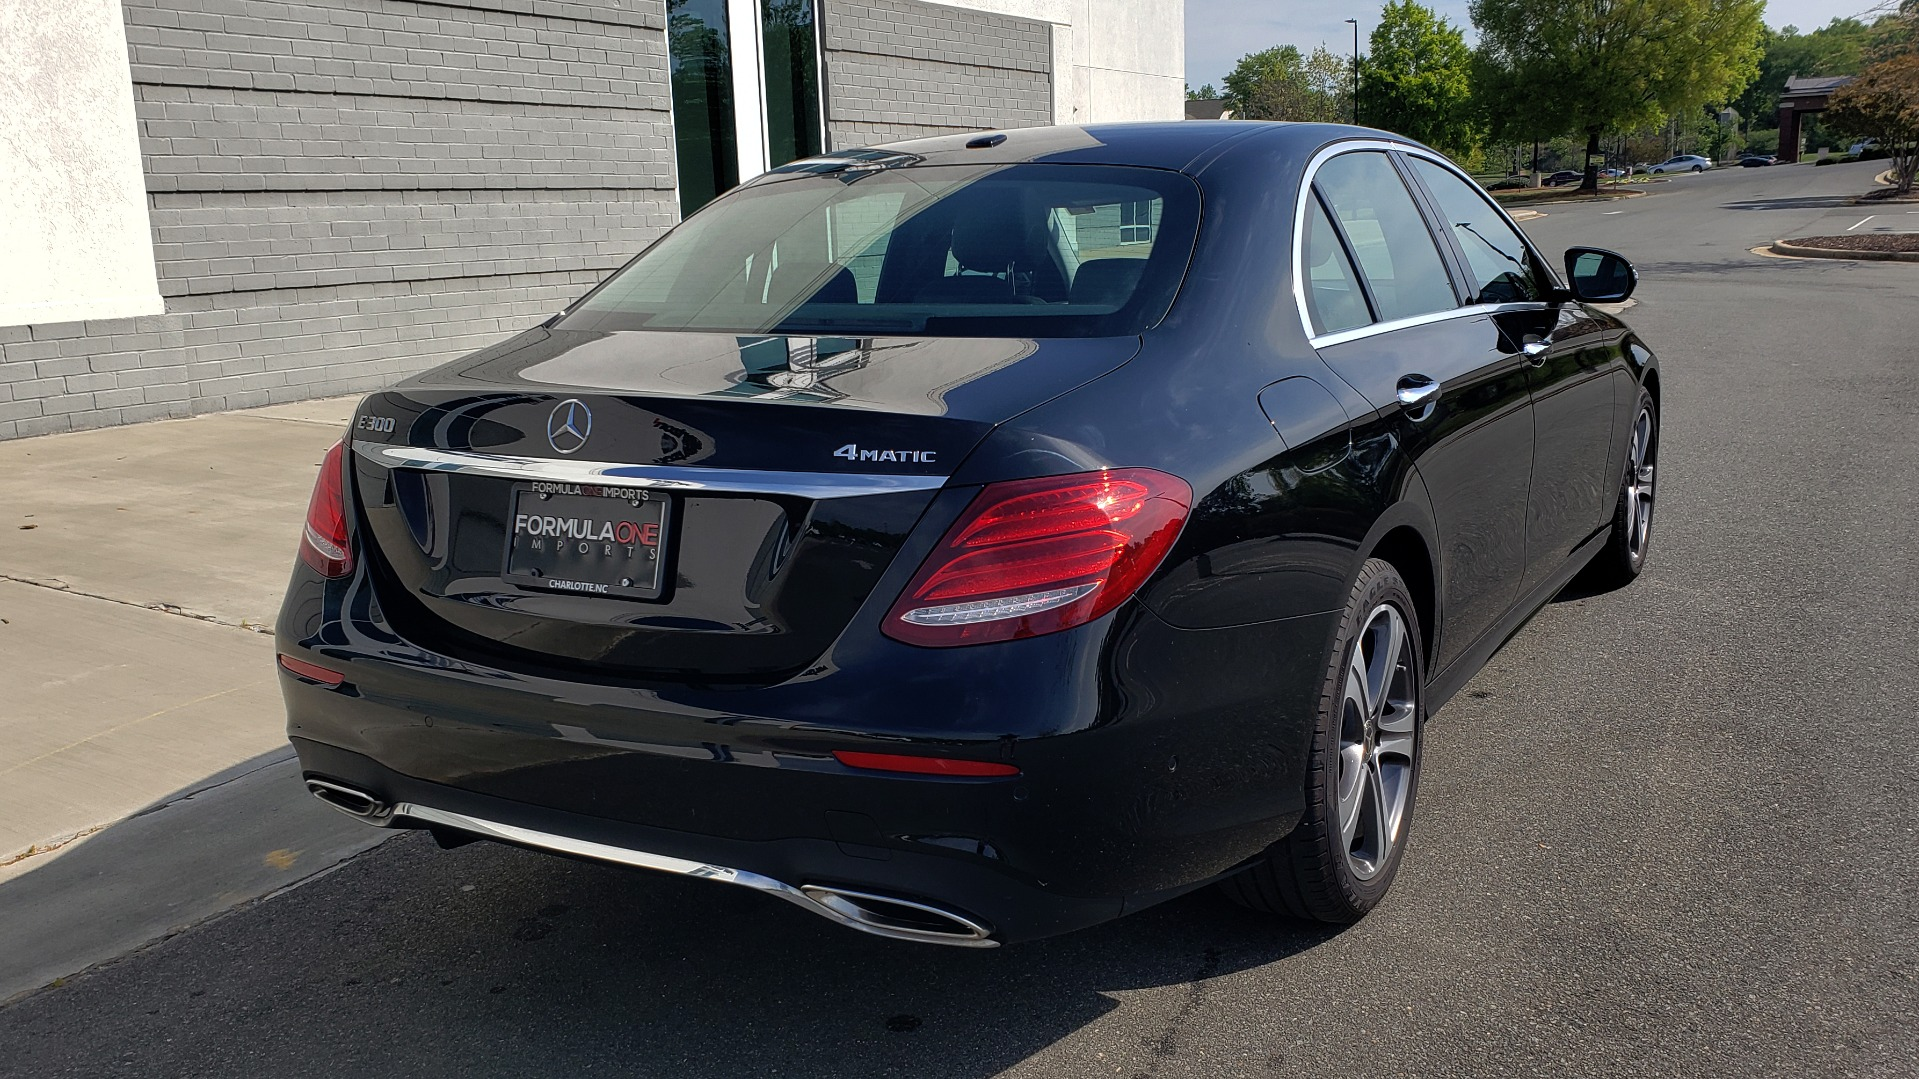 Used 2018 Mercedes-Benz E-CLASS E 300 PREMIUM / 4MATIC / NAV / SUNROOF / H/K SND / REARVIEW for sale $34,195 at Formula Imports in Charlotte NC 28227 11